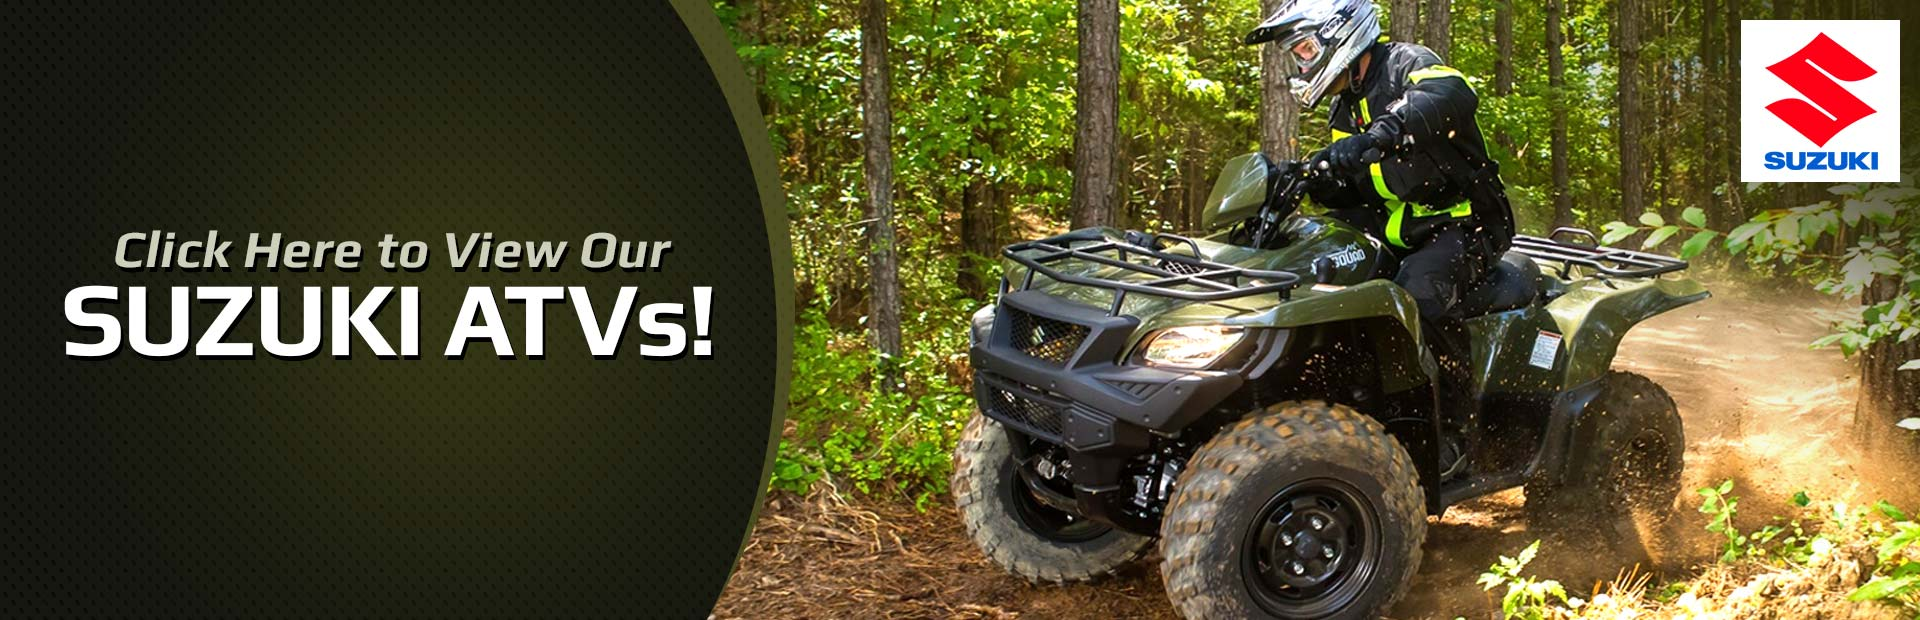 Click here to view our Suzuki ATVs!